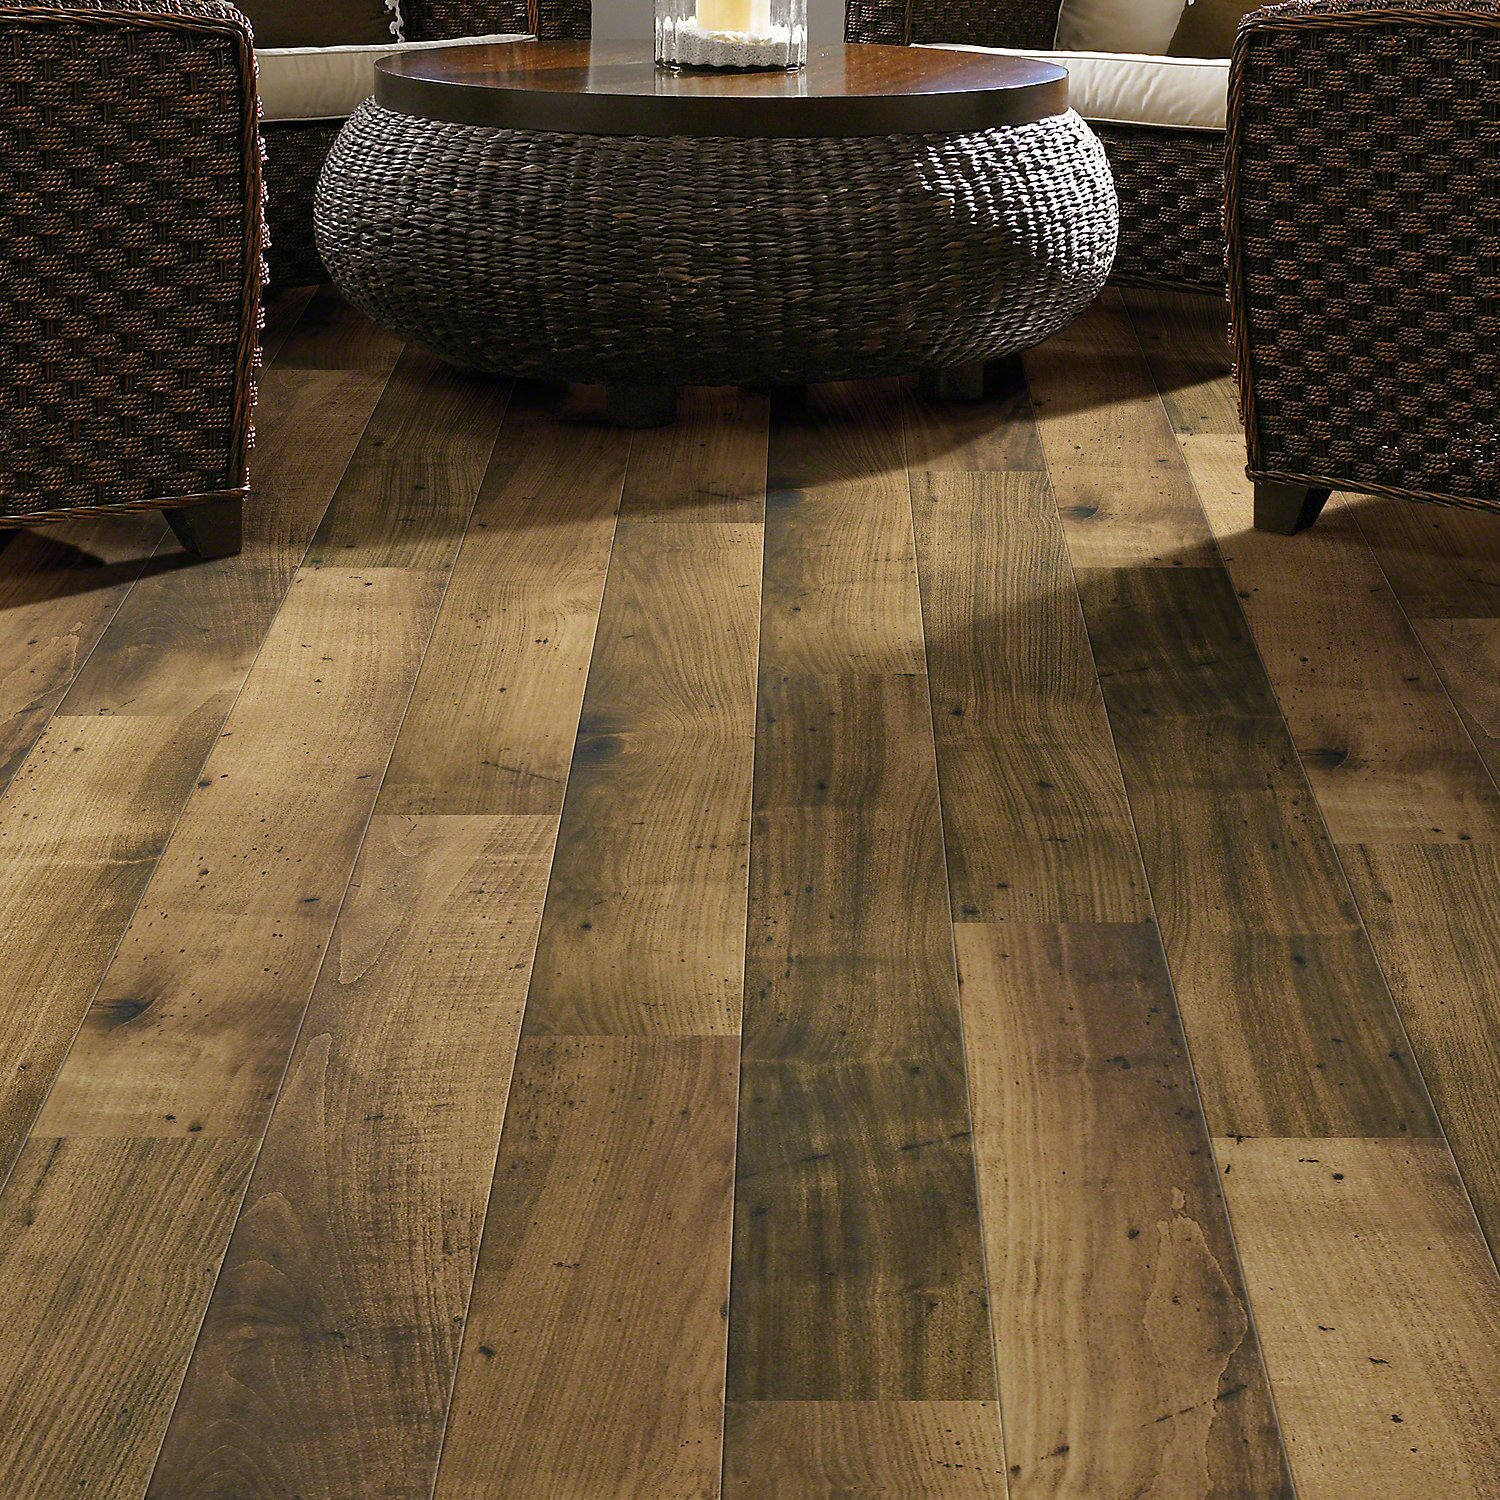 Maple Laminate Flooring home decorators collection blackened maple 8 mm thick x 4 78 in wide x 47 14 in length laminate flooring 1913 sq ft case hdc504 the home depot 5 X 48 X 8mm Maple Laminate In Mont Blanc Maple